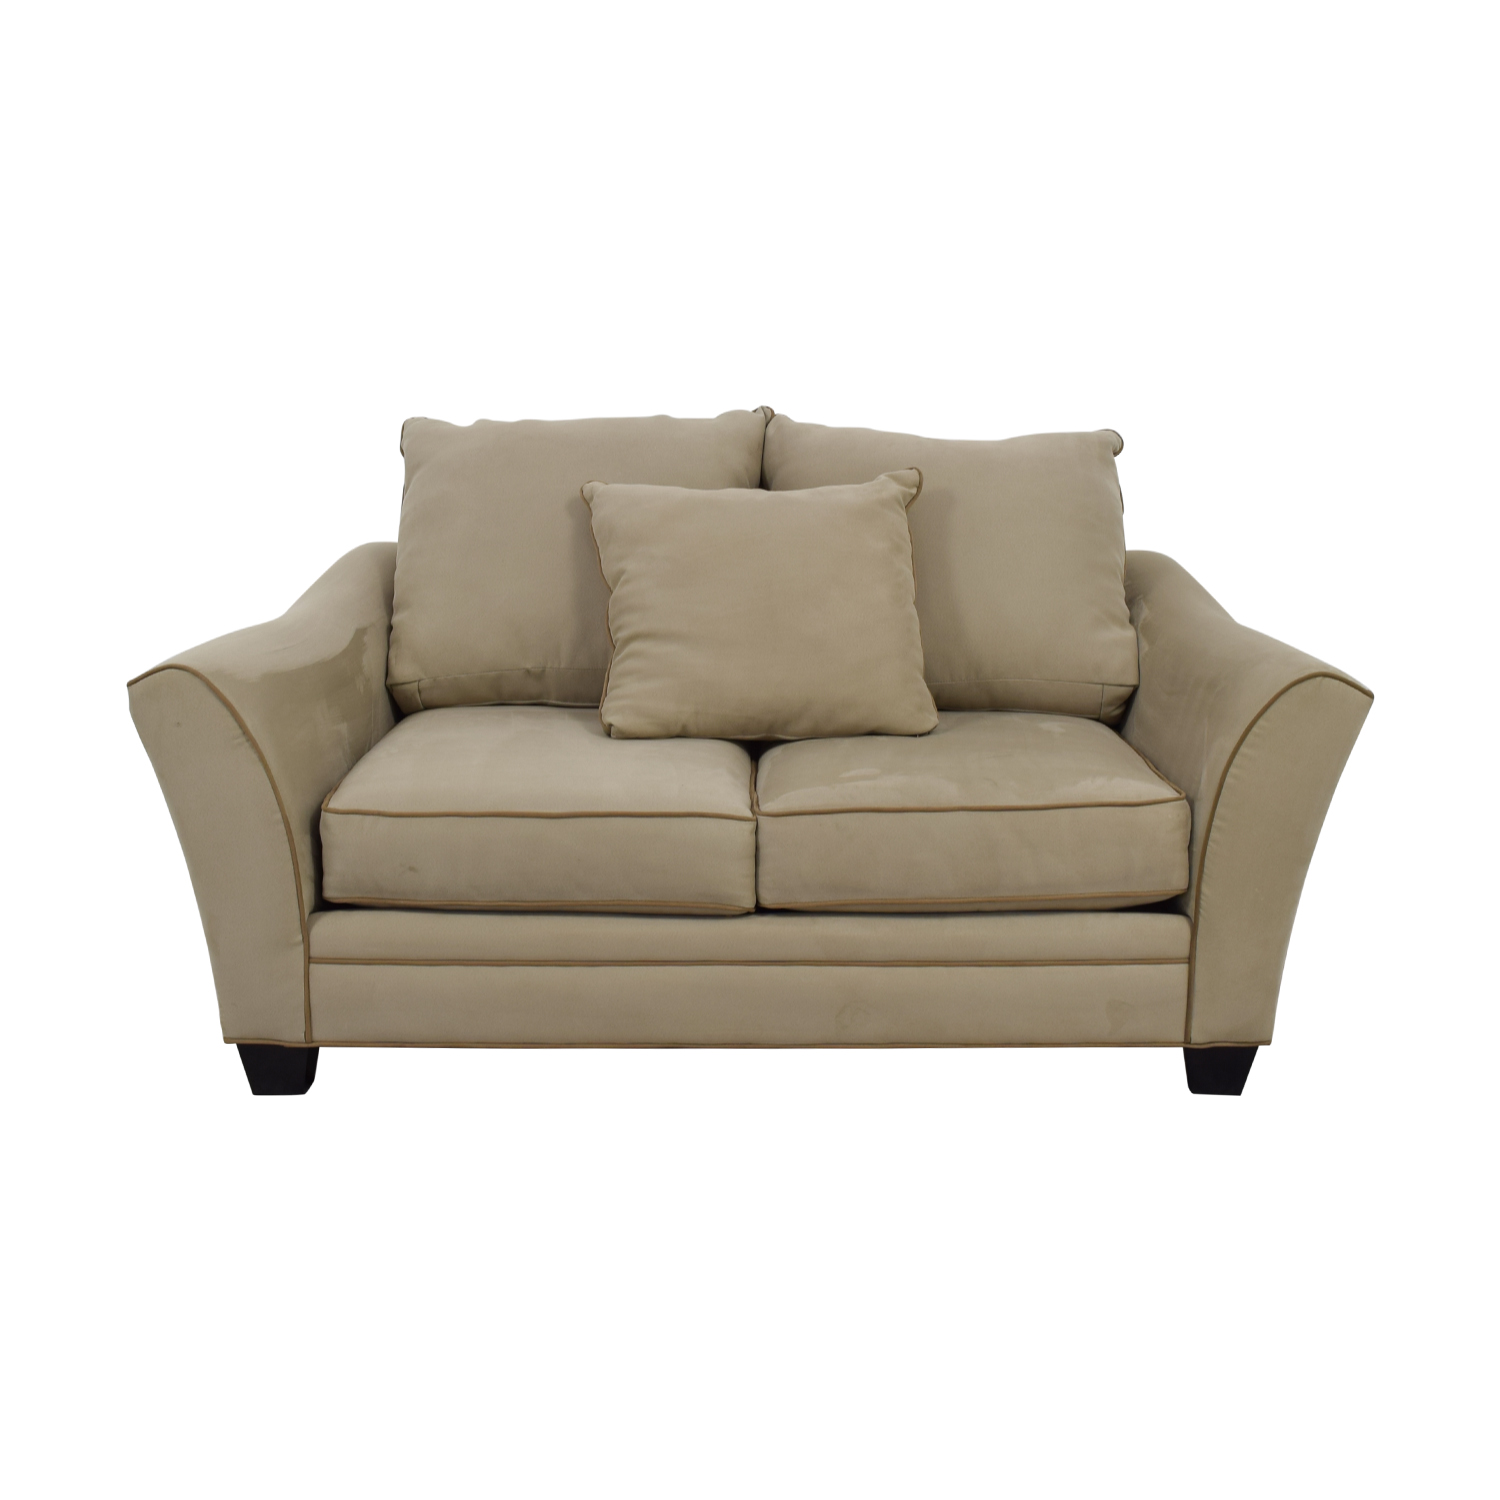 shop Raymour & Flanigan Raymour & Flanigan Grey and Beige Two-Cushion Loveseat online